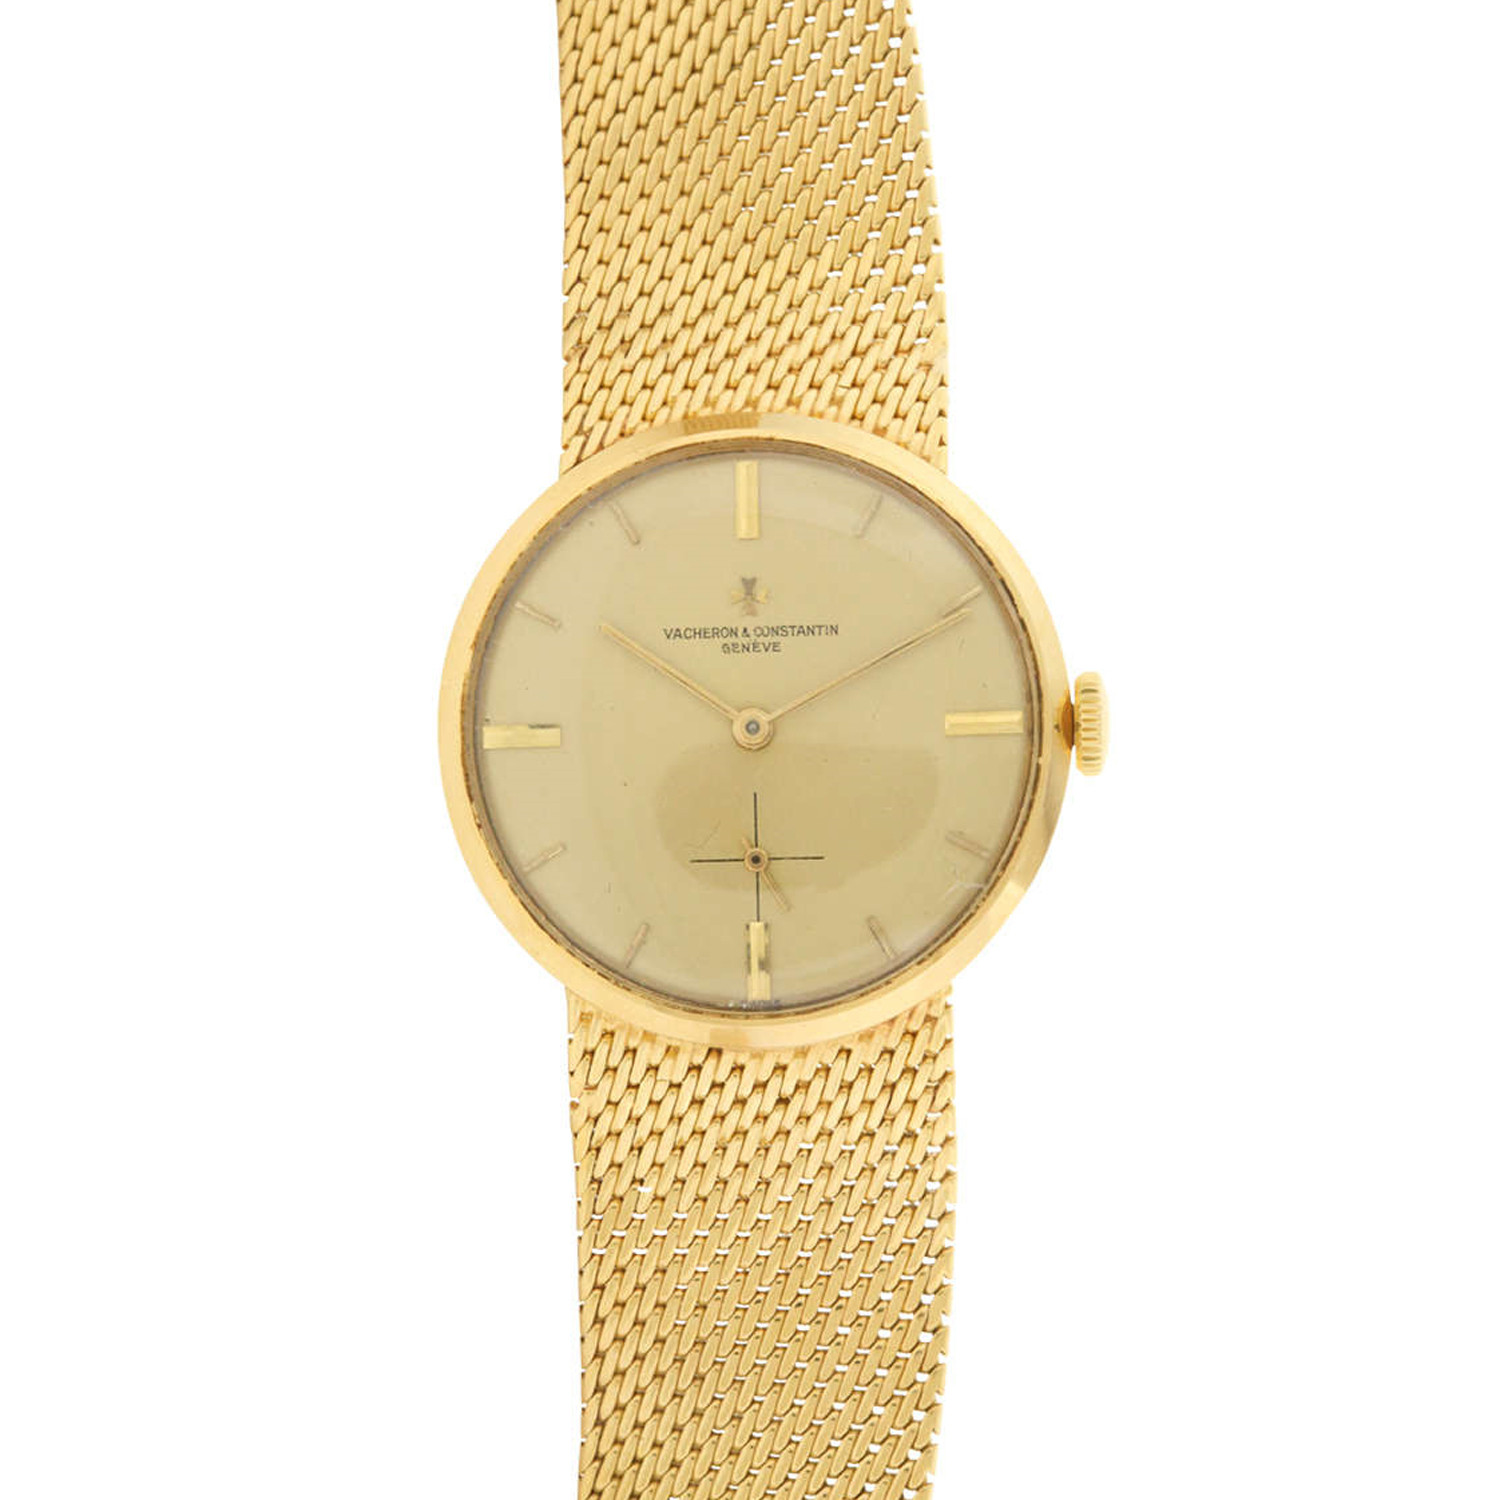 Vacheron constantin 18k yellow gold bracelet watch exceptional vintage watches for Vintage gold watch